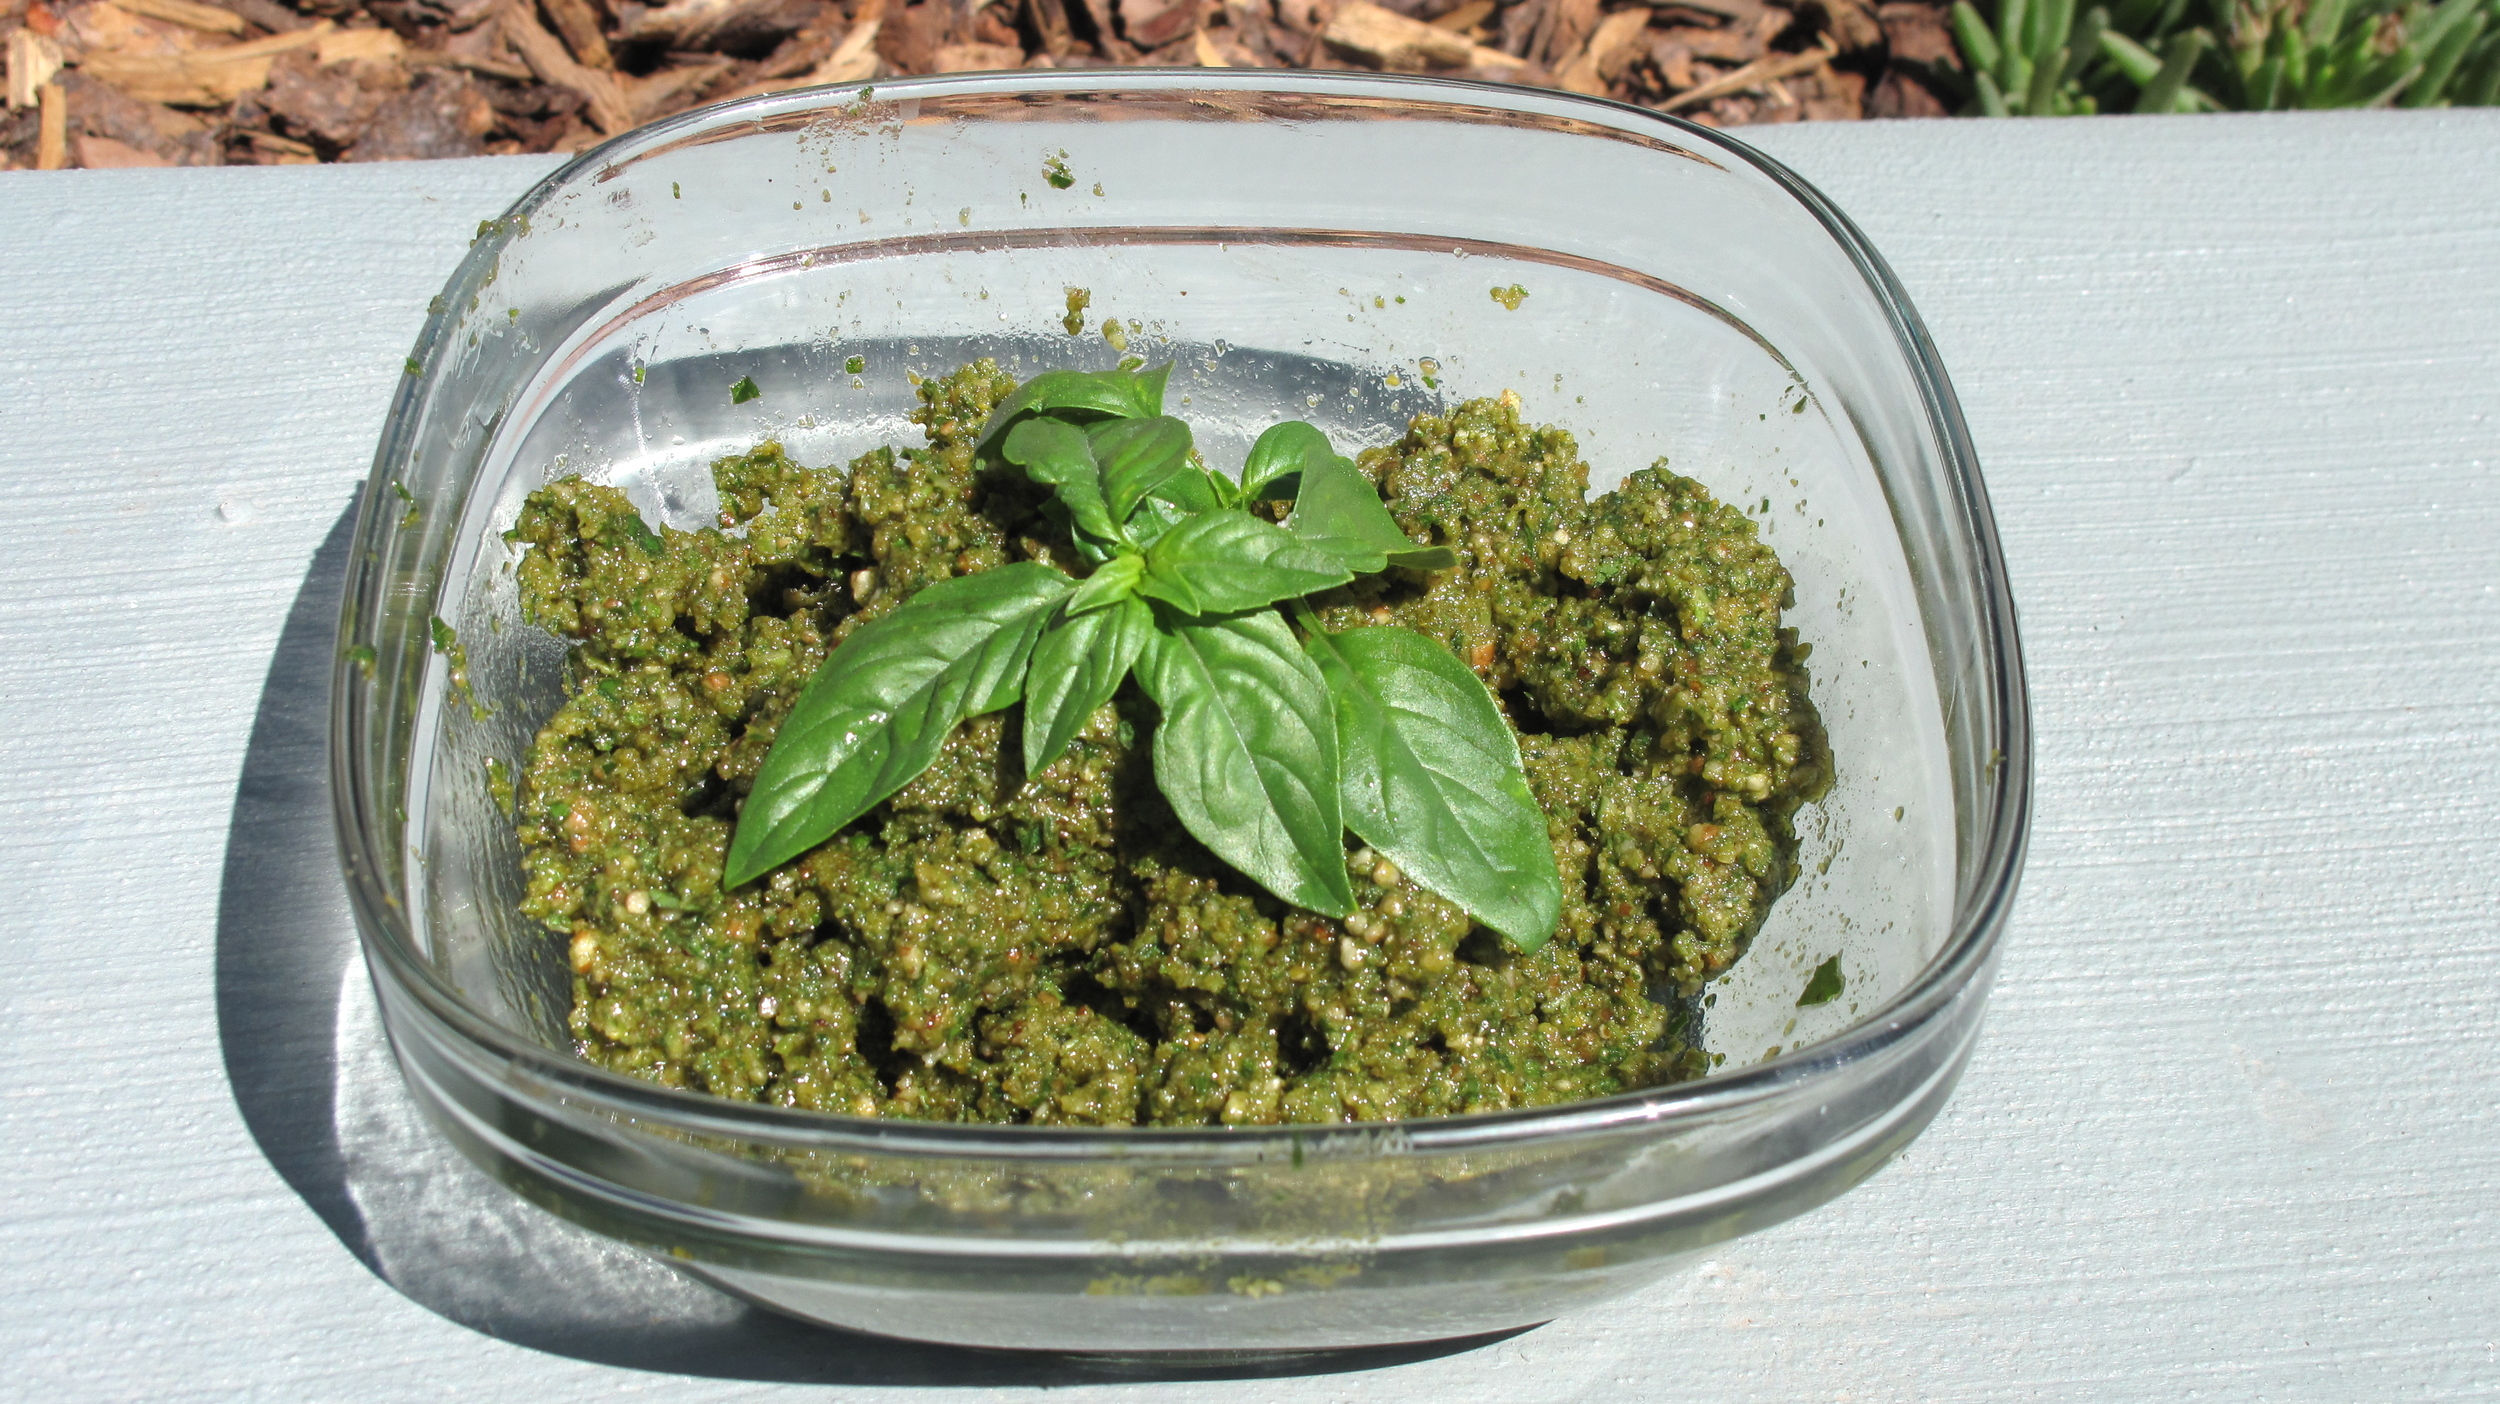 Slathered on bread, tomatoes, or to dress a salad, this pesto is tops!